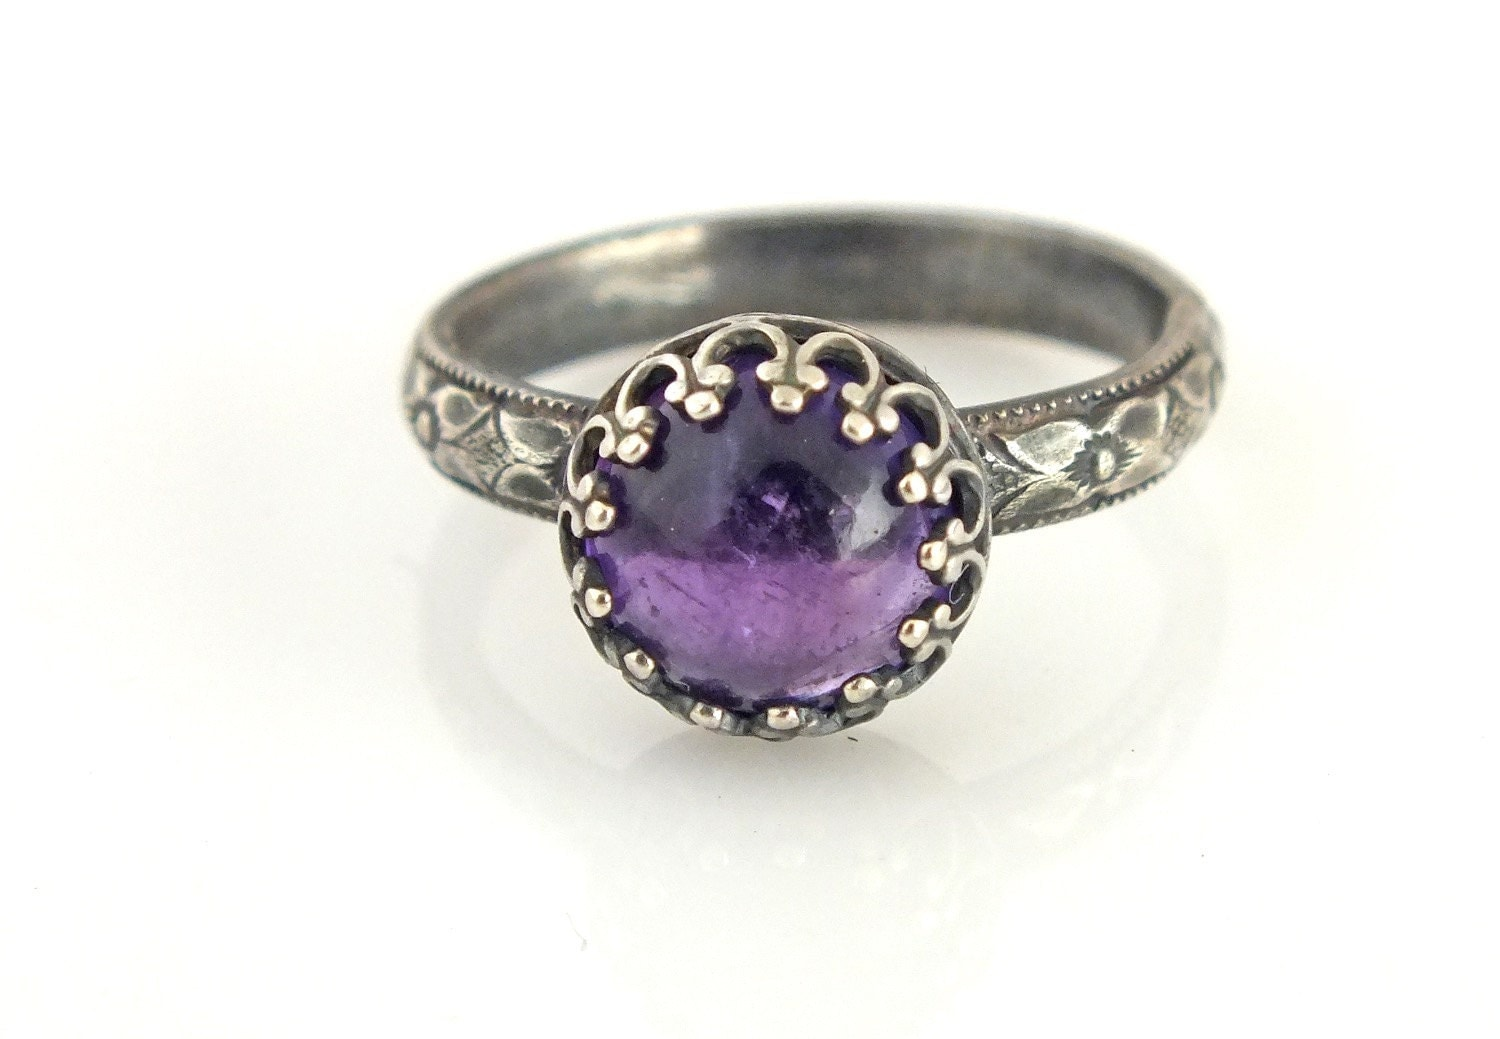 amethyst ring amethyst jewelry unique wedding ring womens